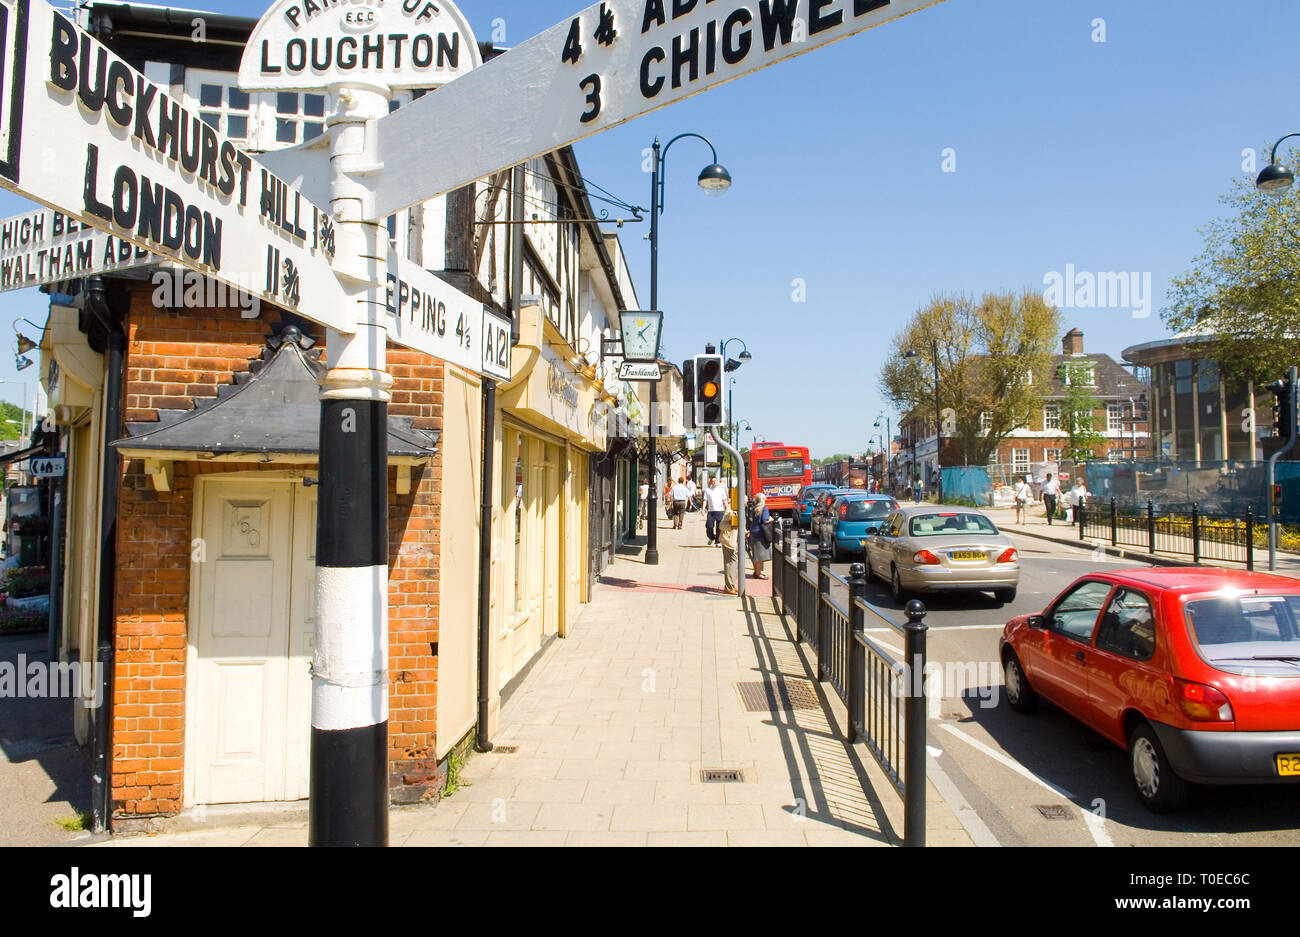 Old Road sign in the Parish of Loughton, showing directions to the A121, London, Abridge and Chigwell - Stock Image